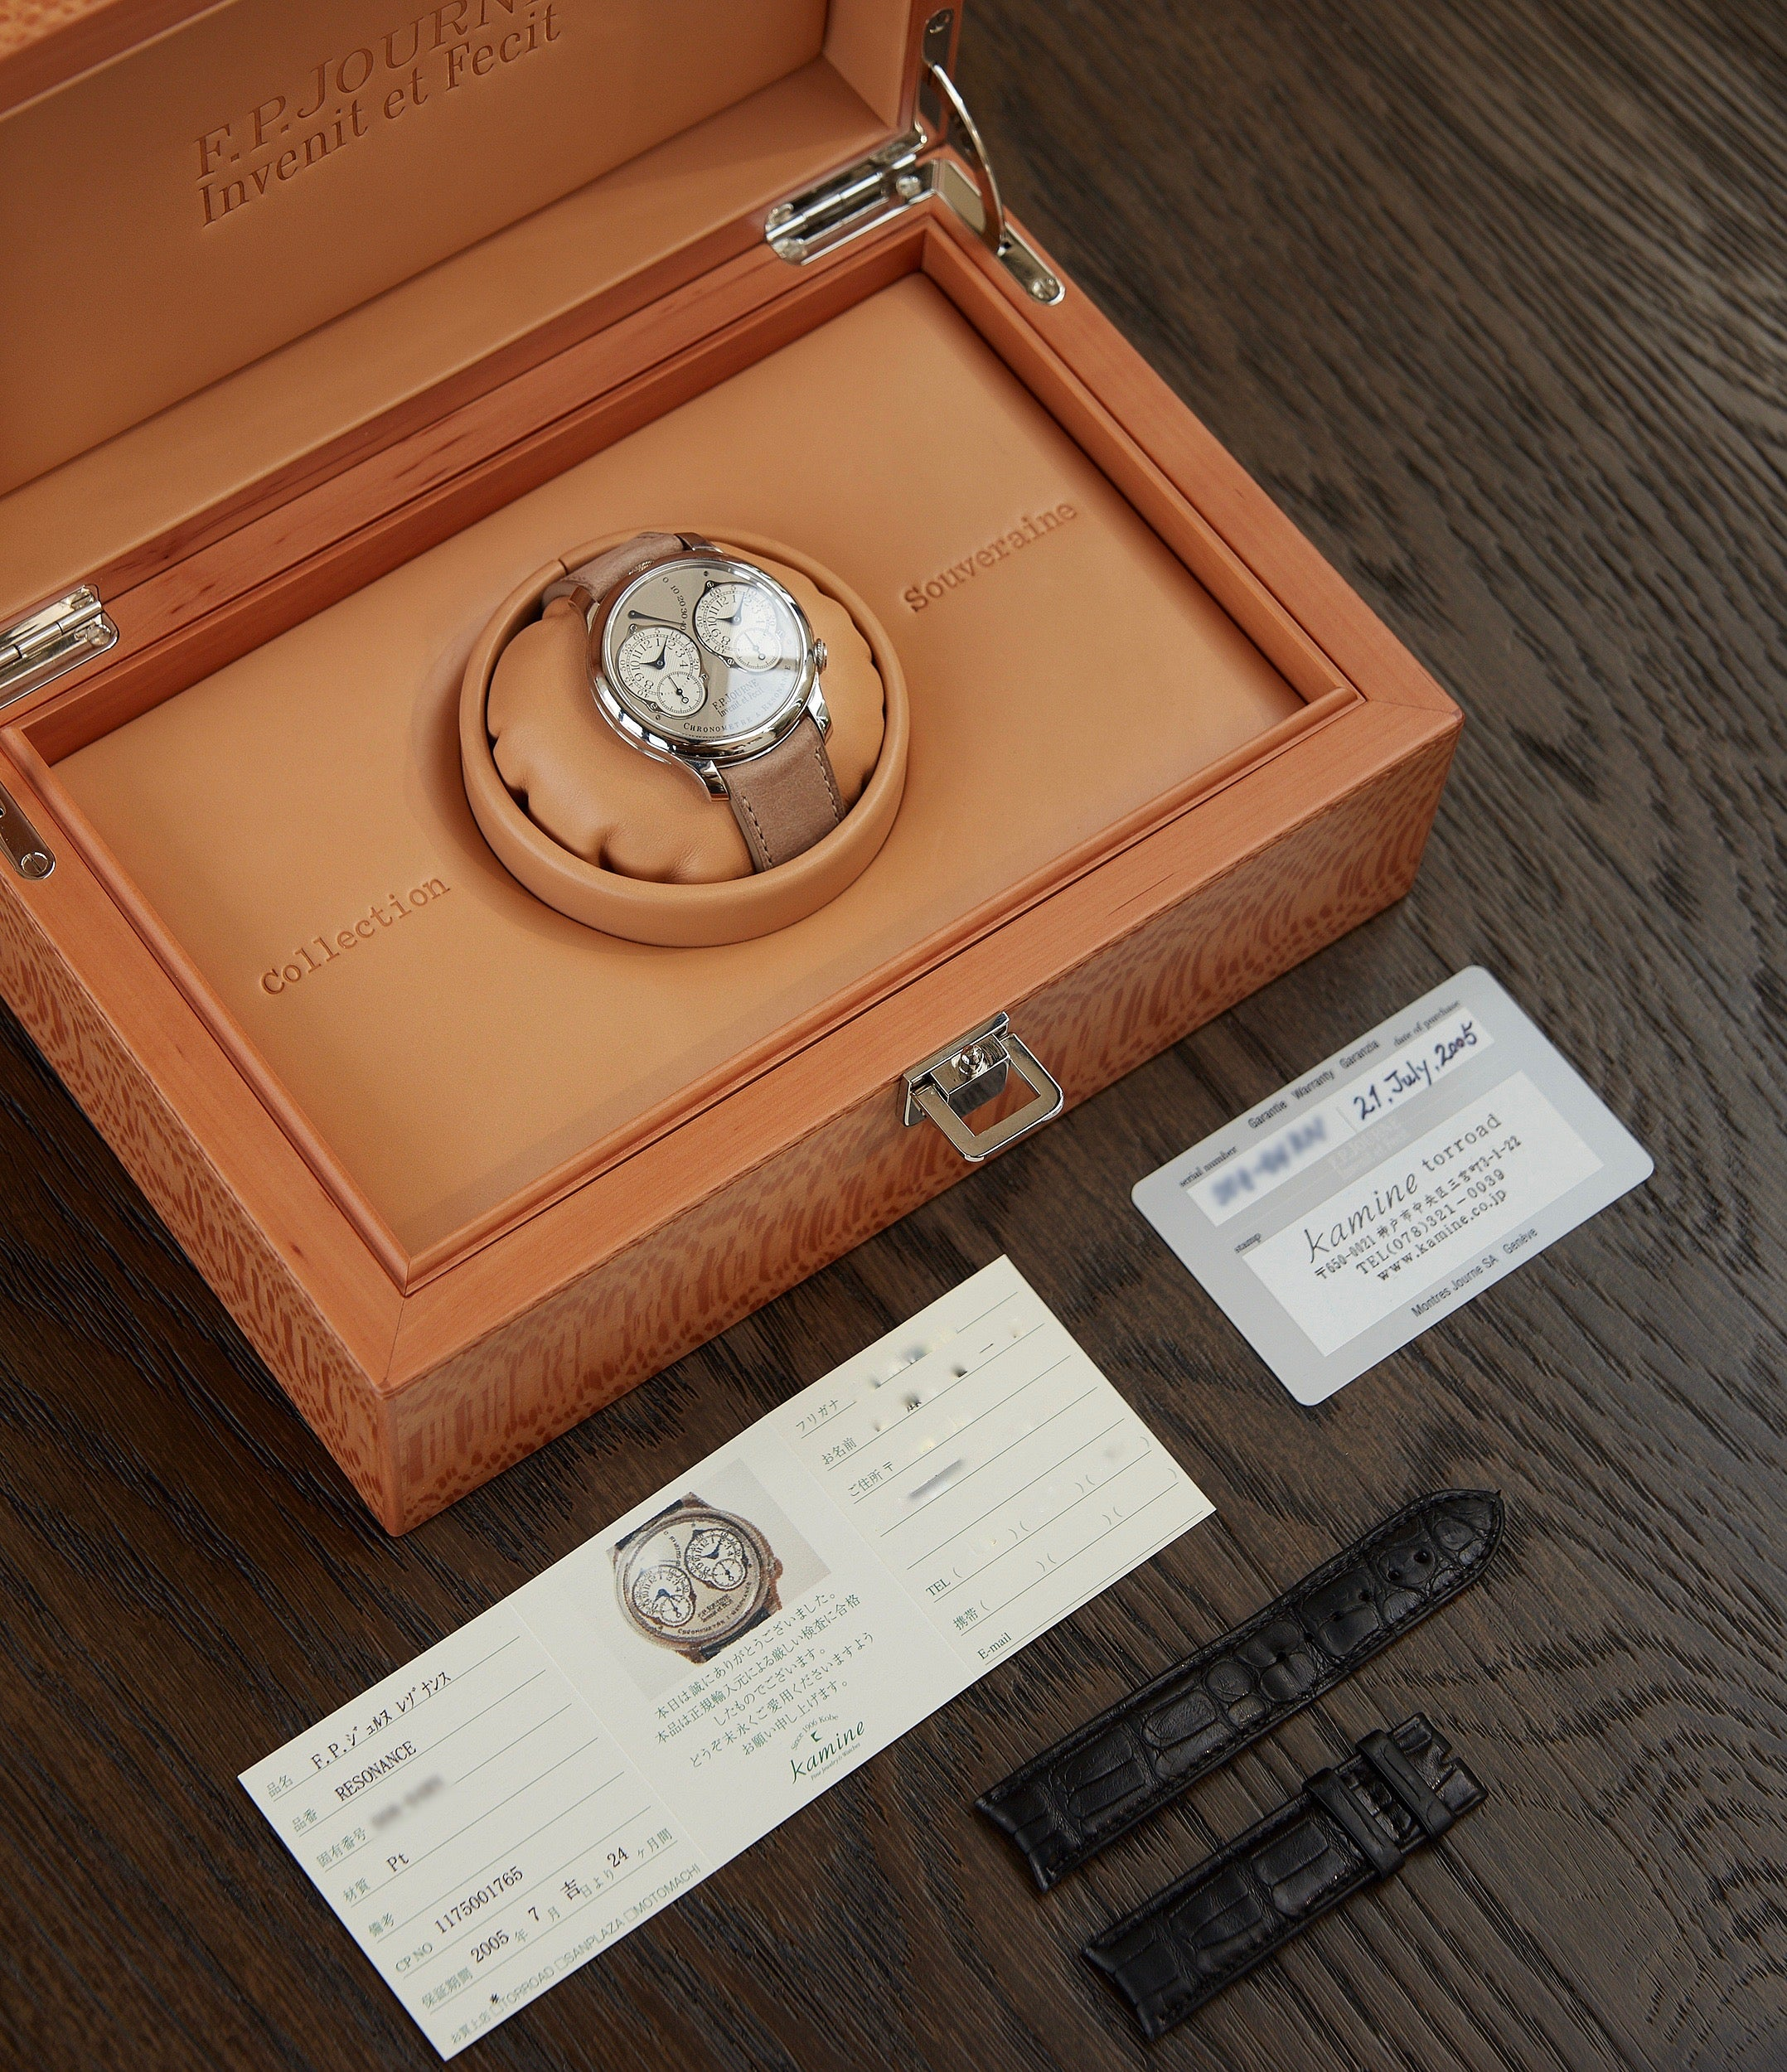 buy pre-owned F. P. Journe full set Chronometre Resonance Second Series RN gold movement platinum watch for sale online at A Collected Man London UK specialist of independent watchmakers